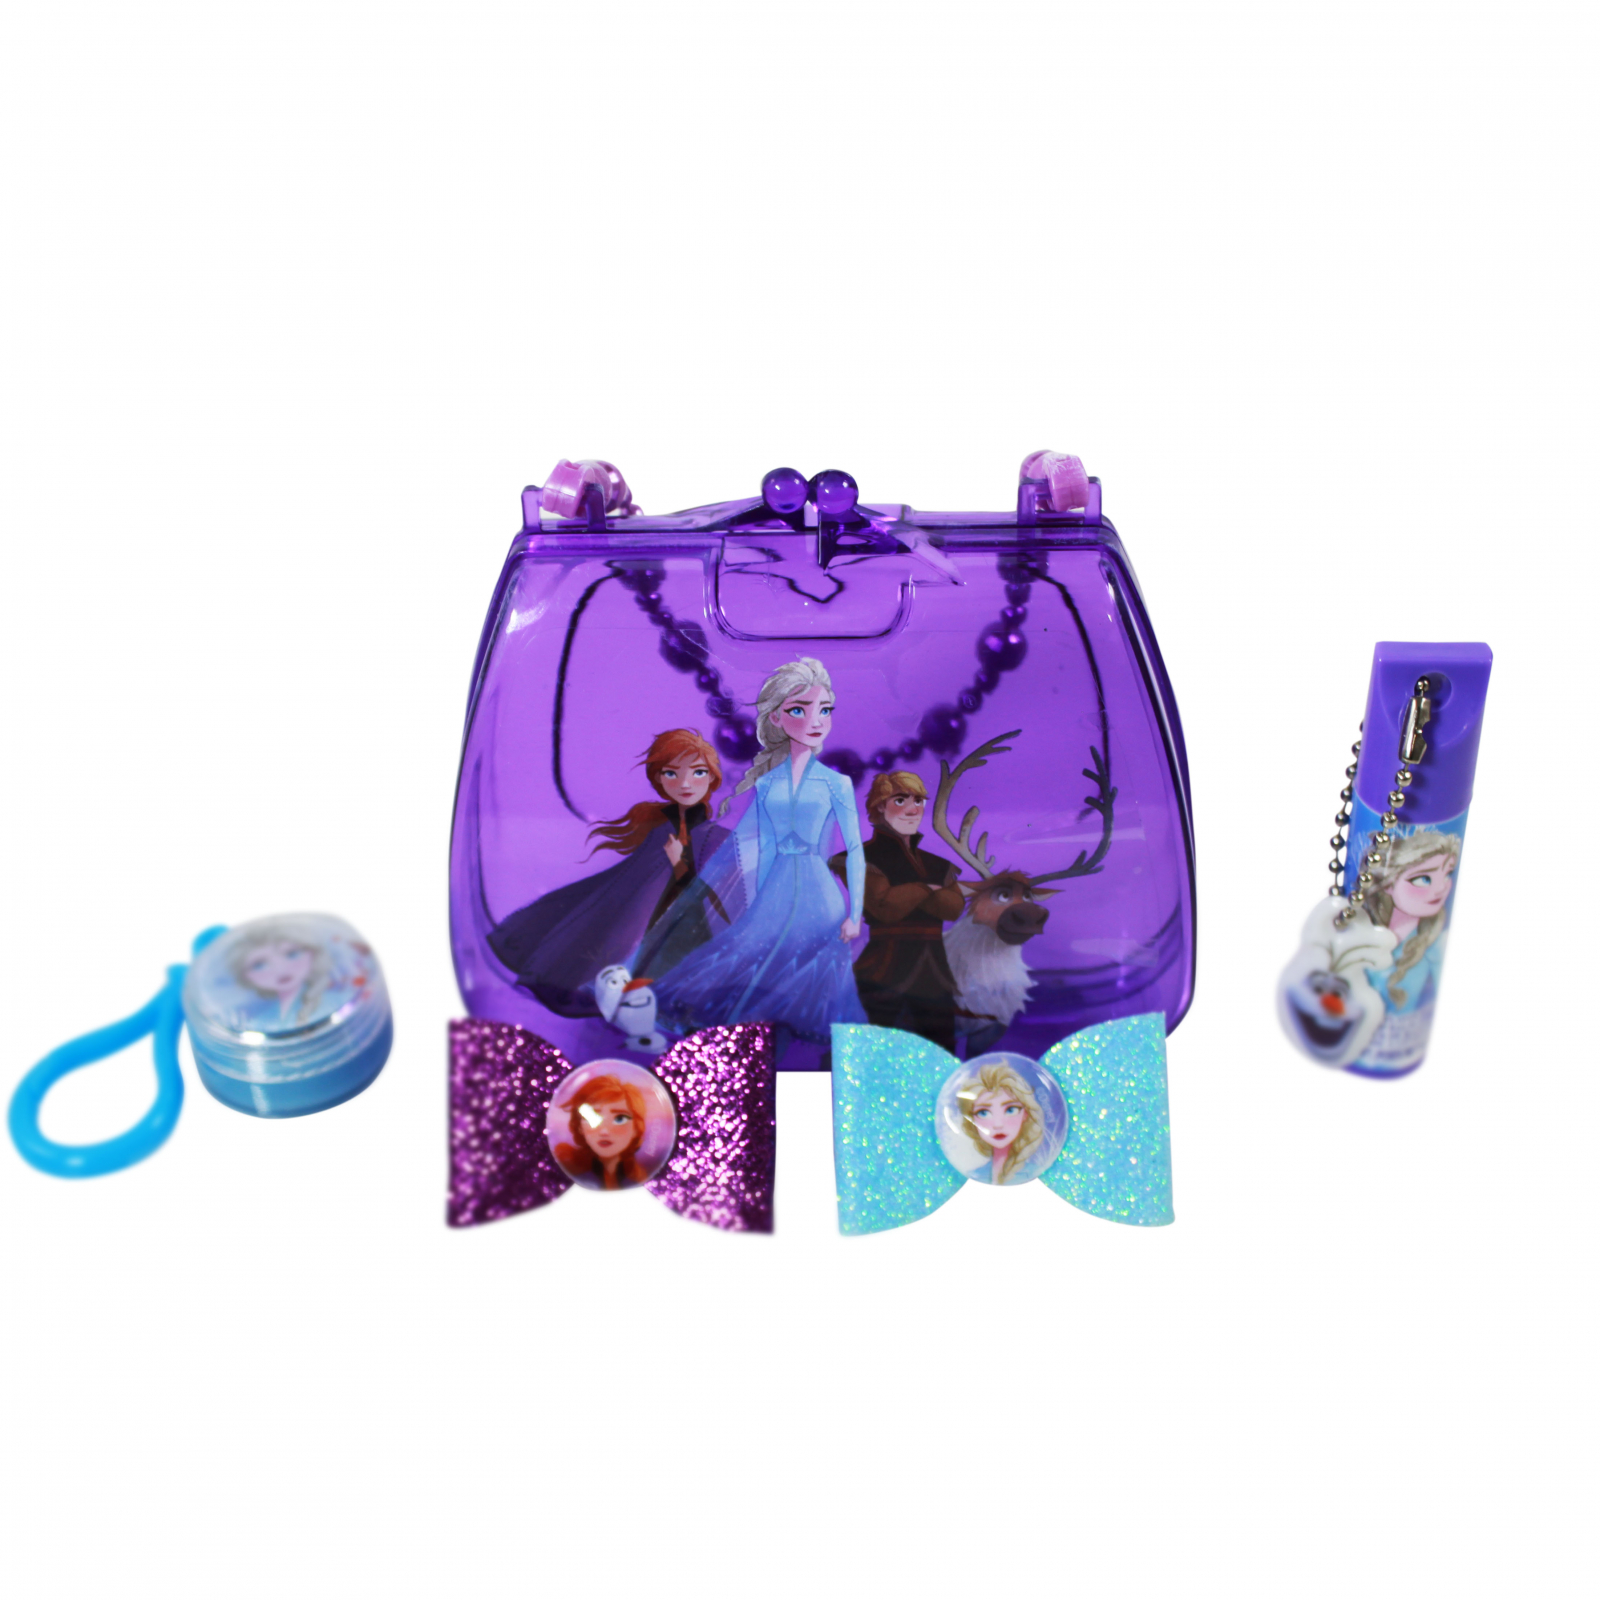 Disney Frozen 2 Girls Cosmetics Makeup Gift Set 5 Pieces